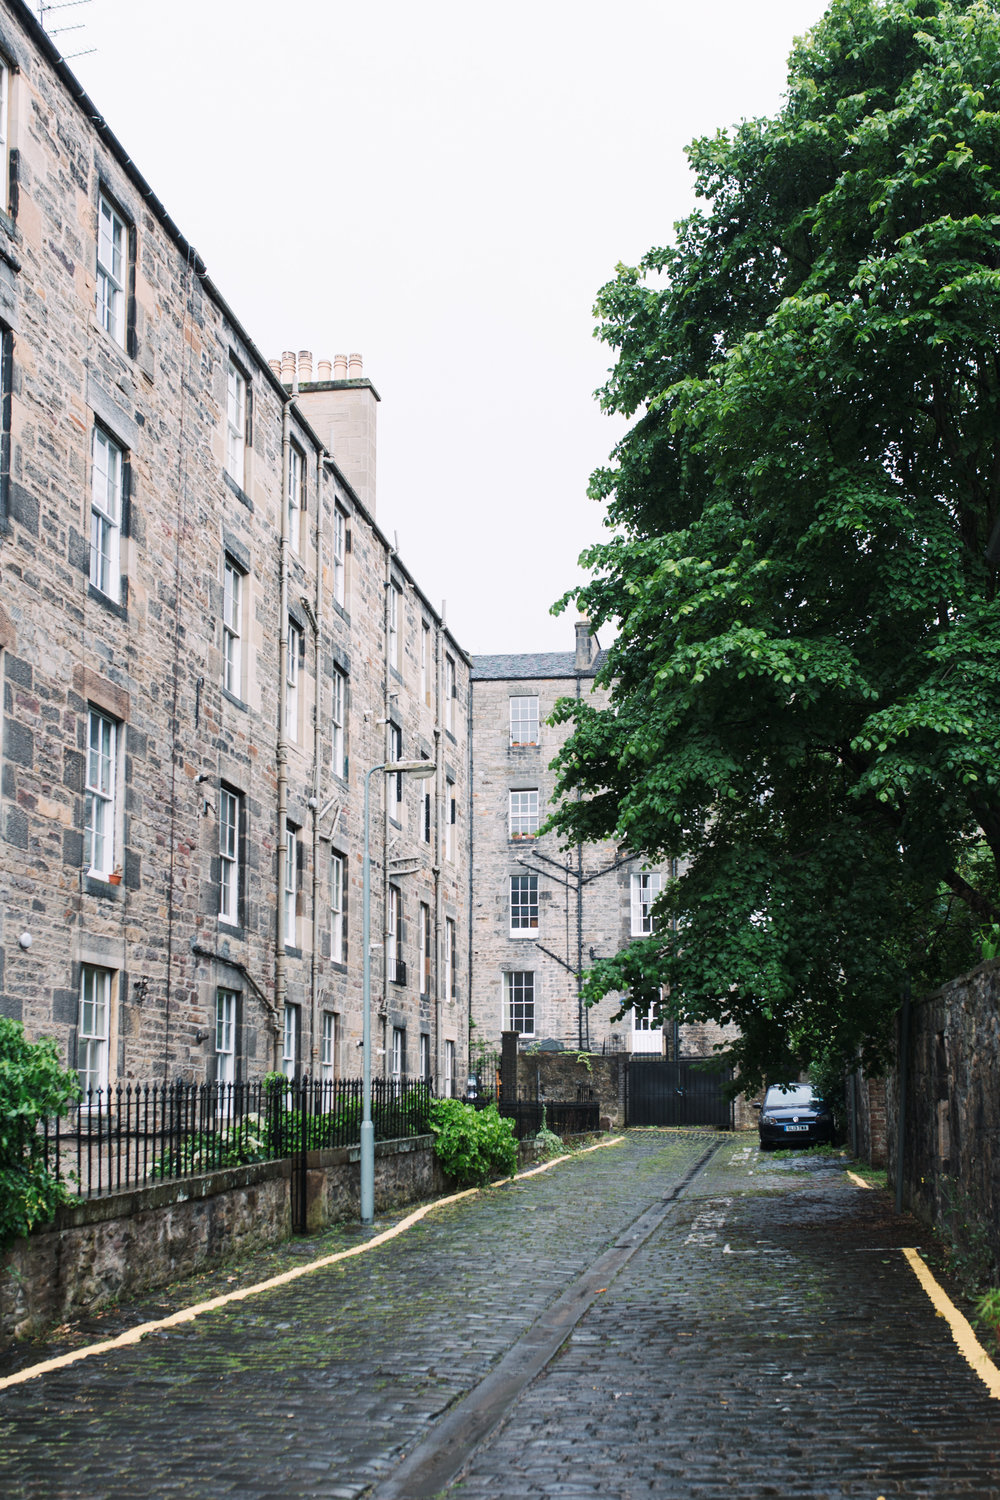 Our AirBnB in New Town, Edinburgh - here is the  link  just in case you want to book it.